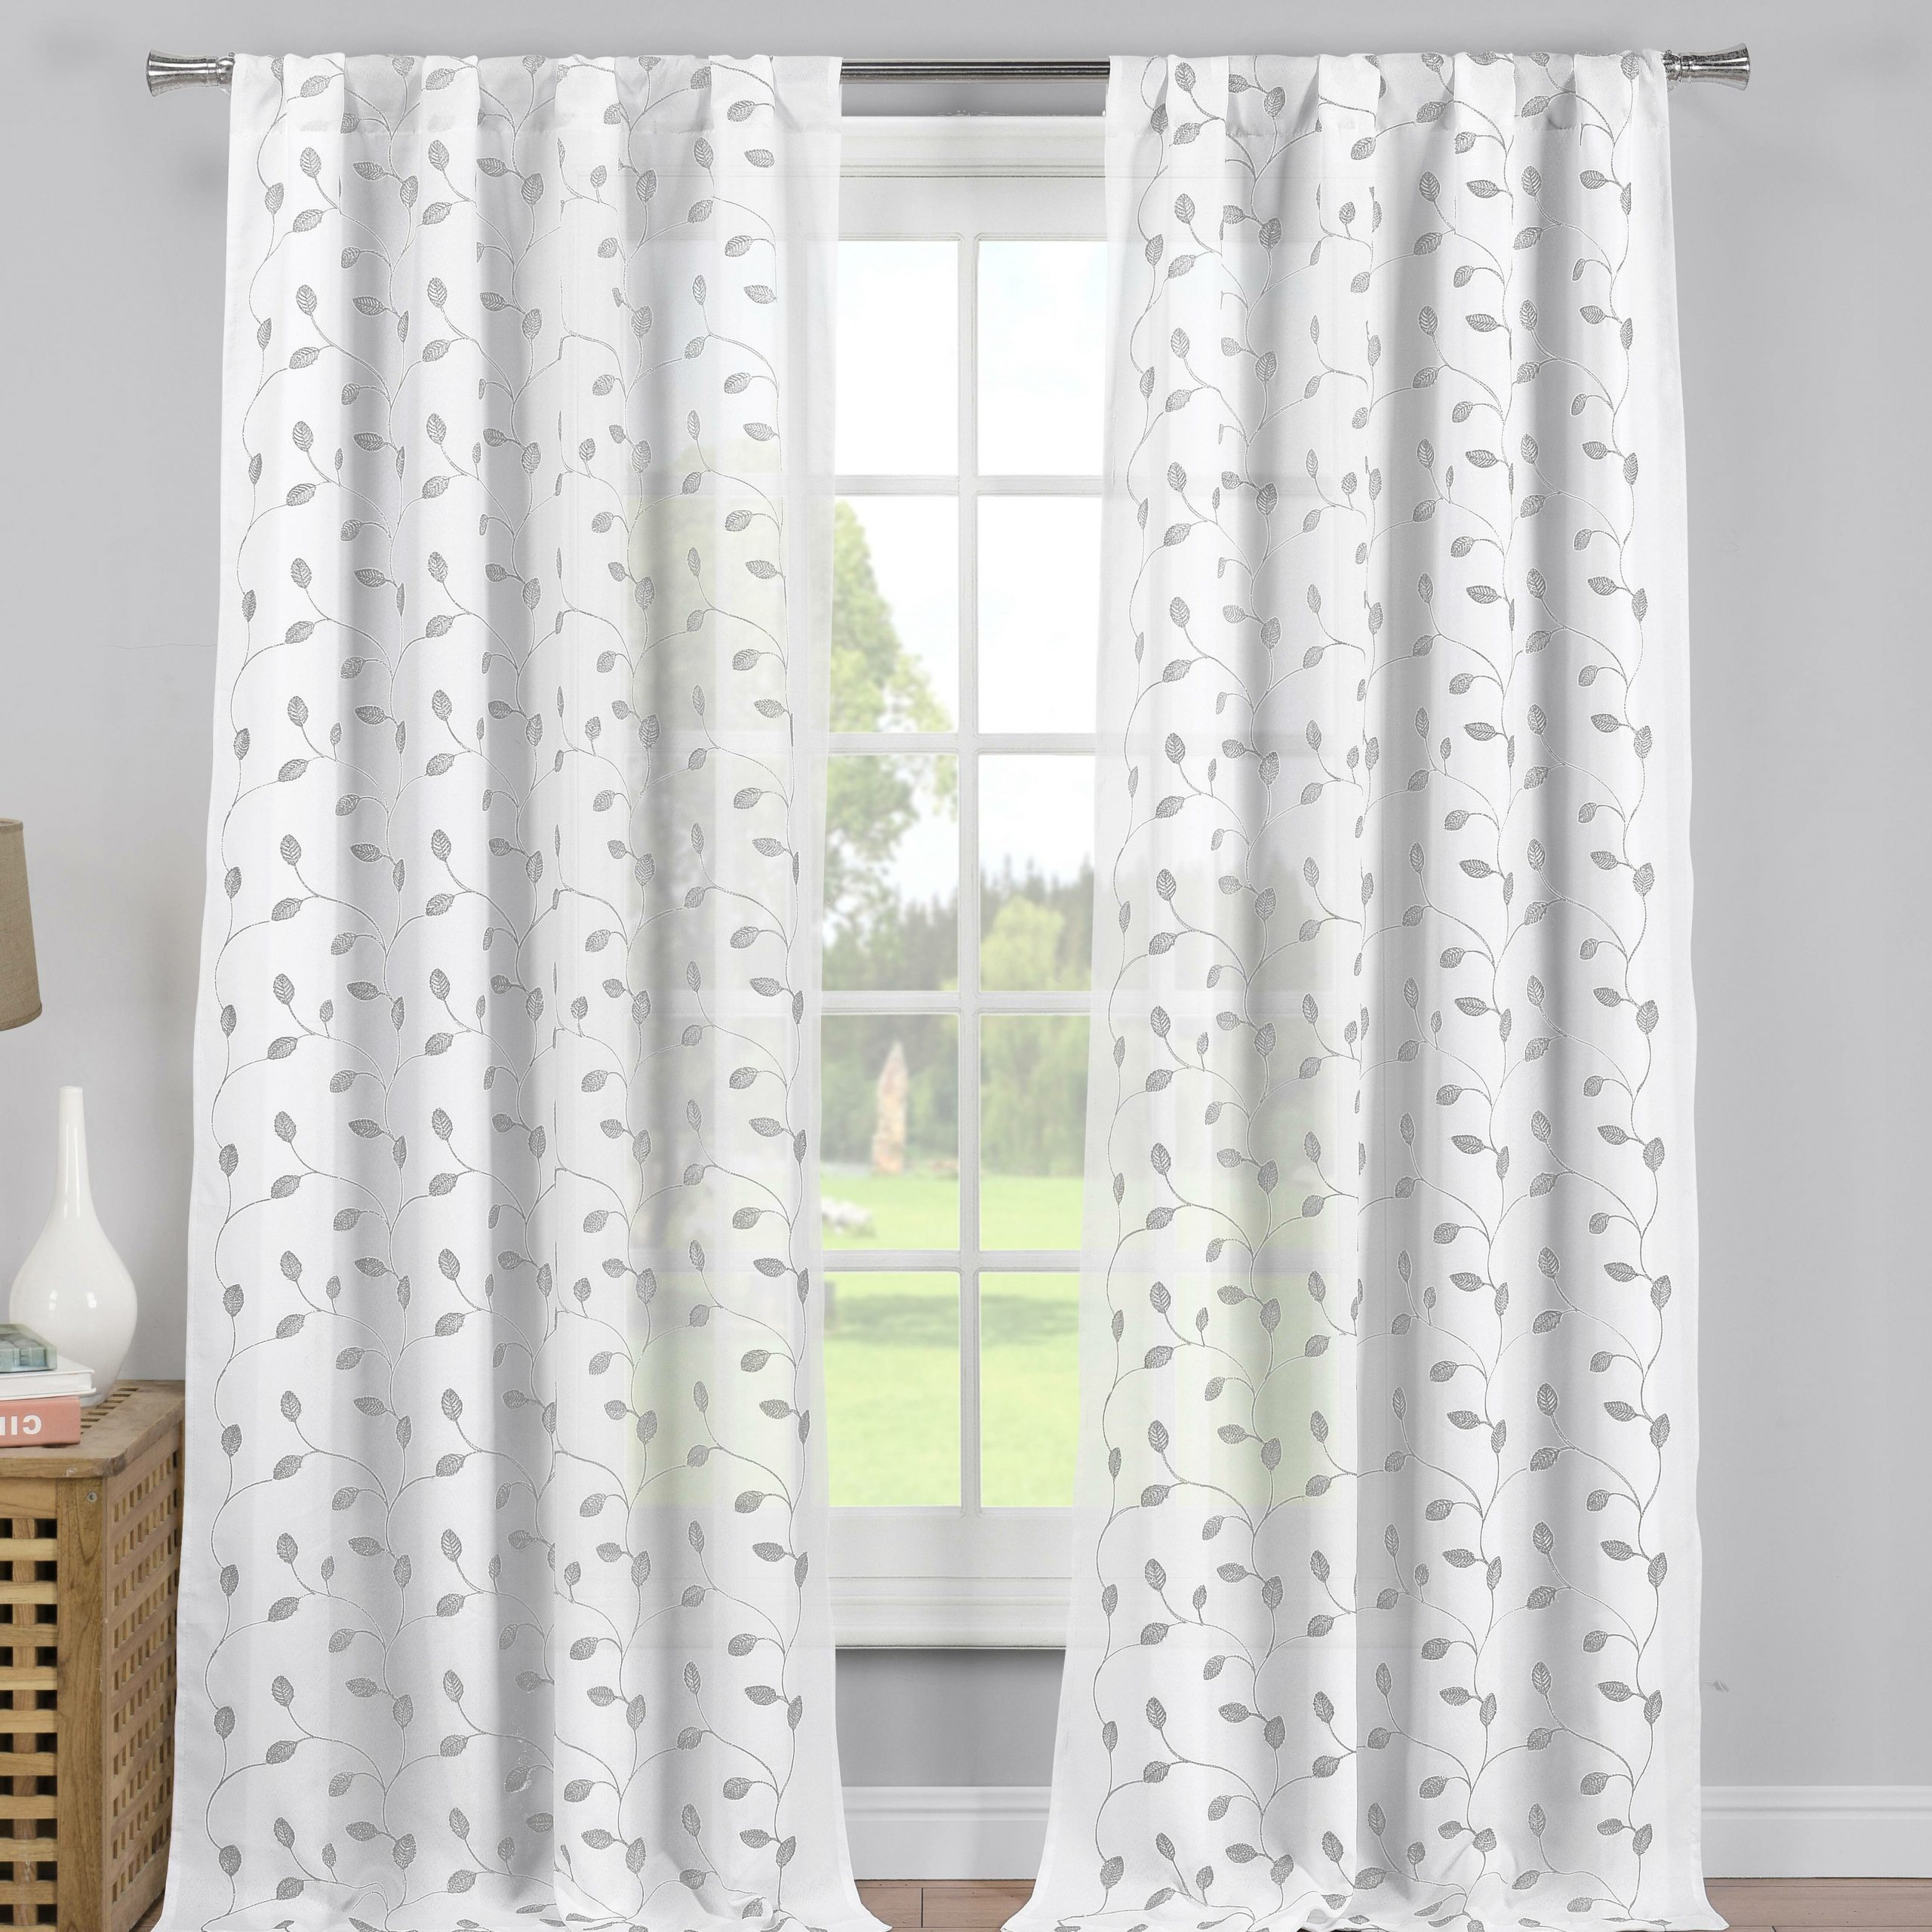 Overseas Leaf Swirl Embroidered Curtain Panel Pairs Within 2020 Whitehurst Embroidered Pole Top Floral / Flower Semi Sheer Rod Pocket Curtain Panels (View 10 of 21)